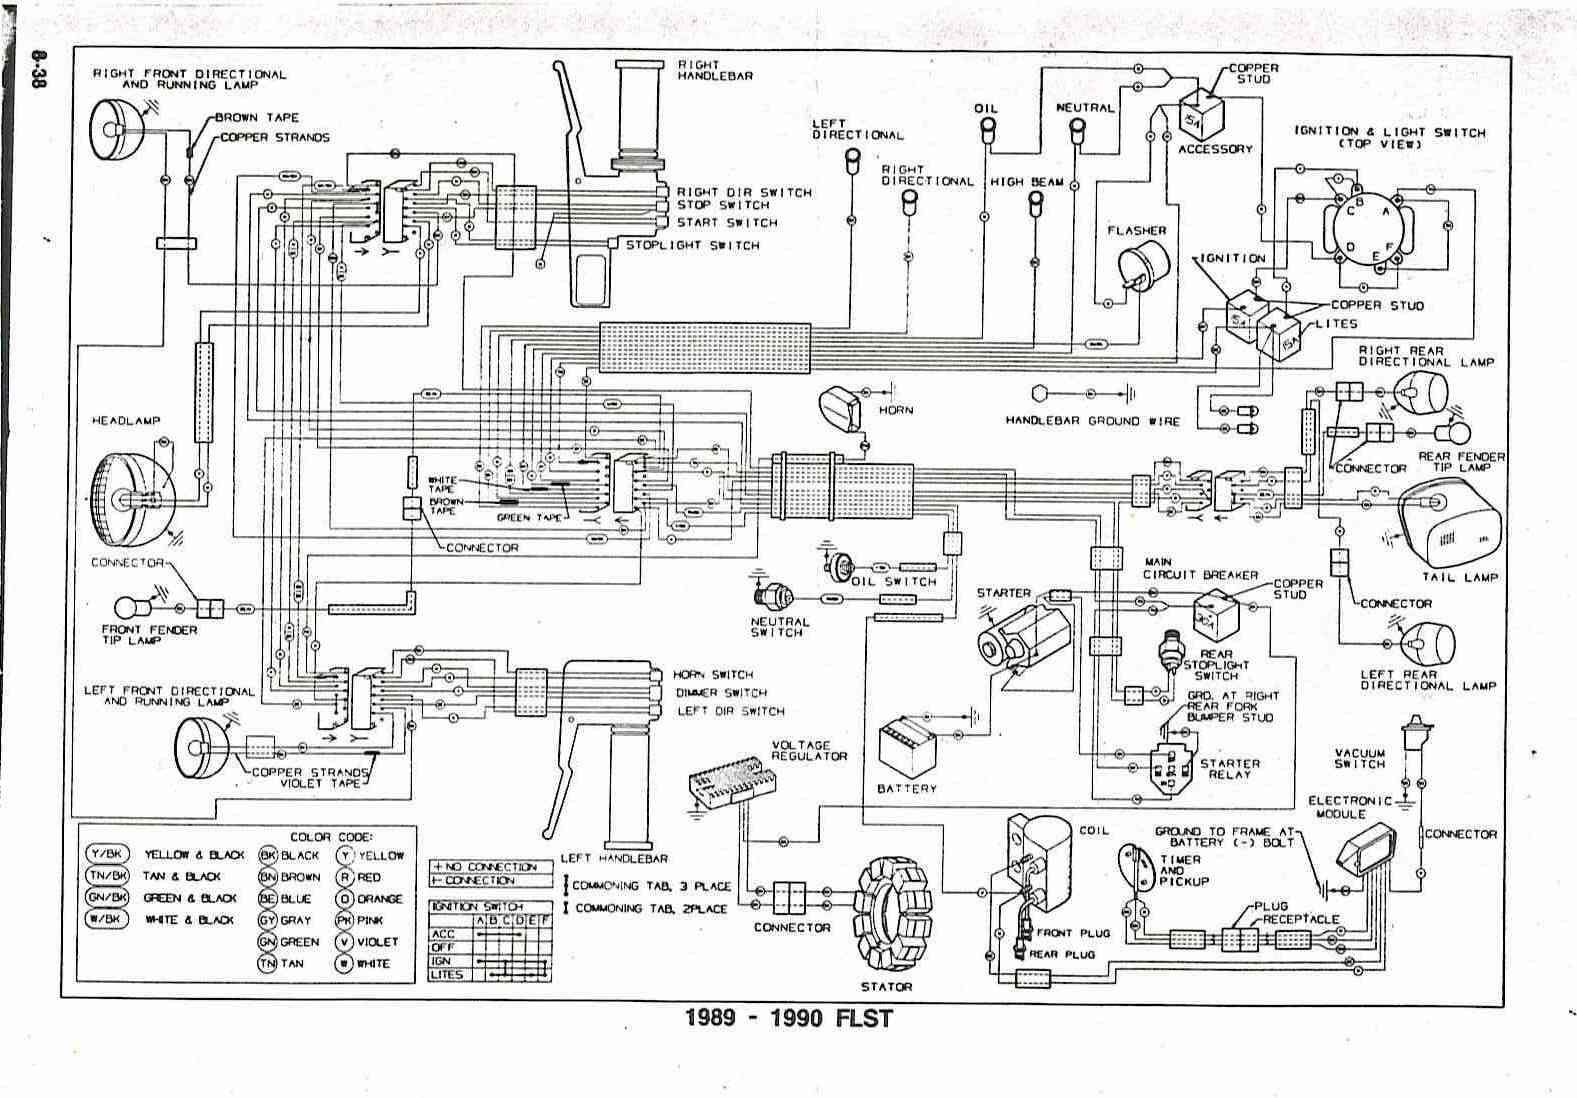 hight resolution of wiring diagrams for 2003 fatboy schematic diagrams harley davidson wiring schematic wiring diagrams for 2003